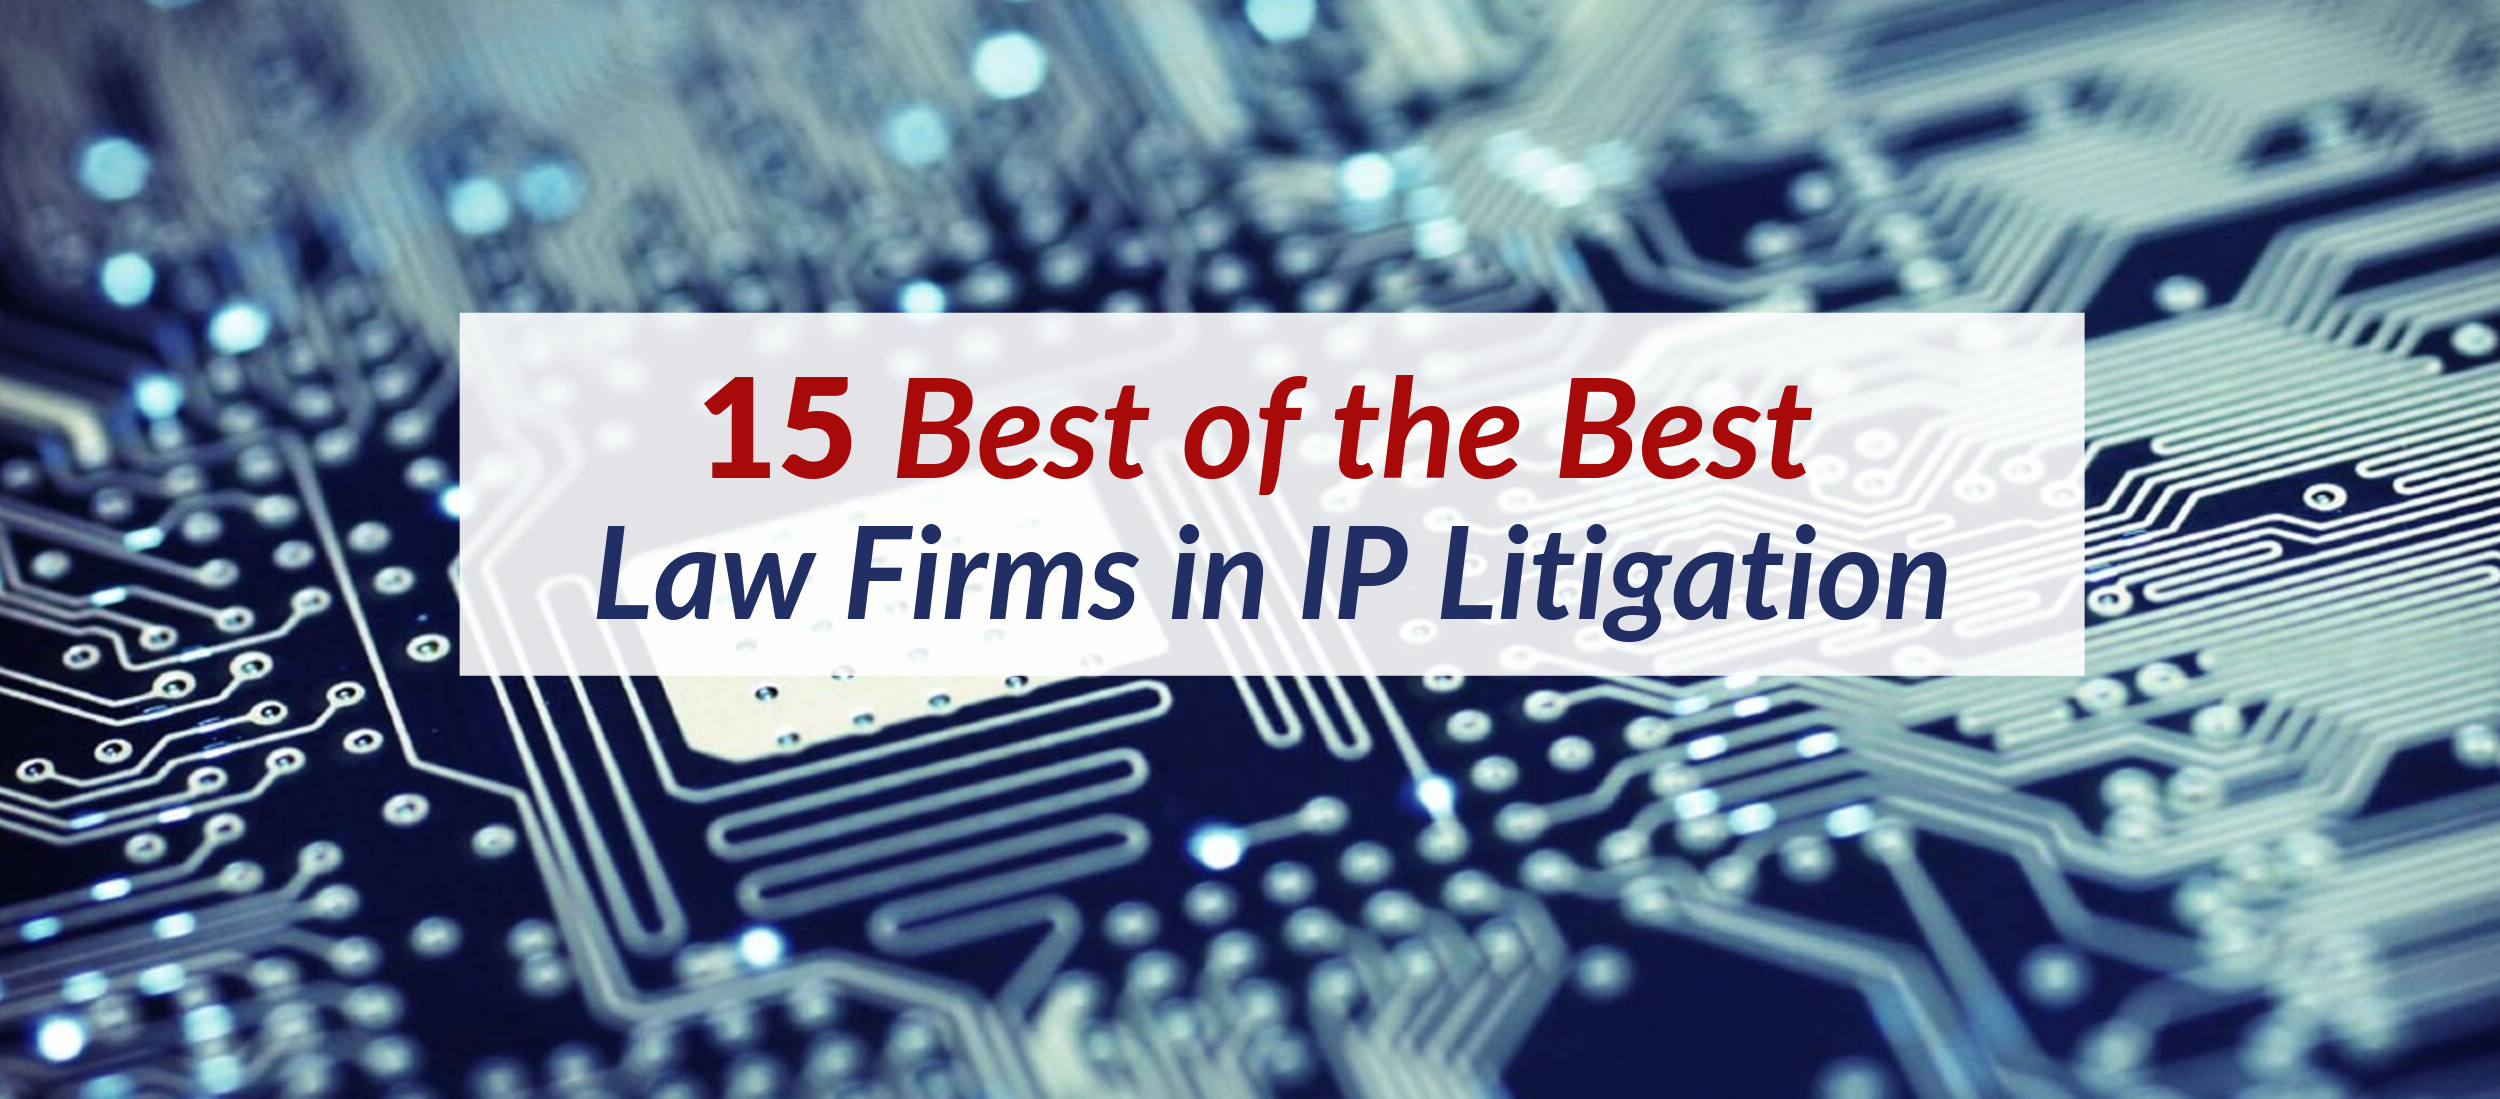 15 Best of the Best Law Firms in IP Litigation.png